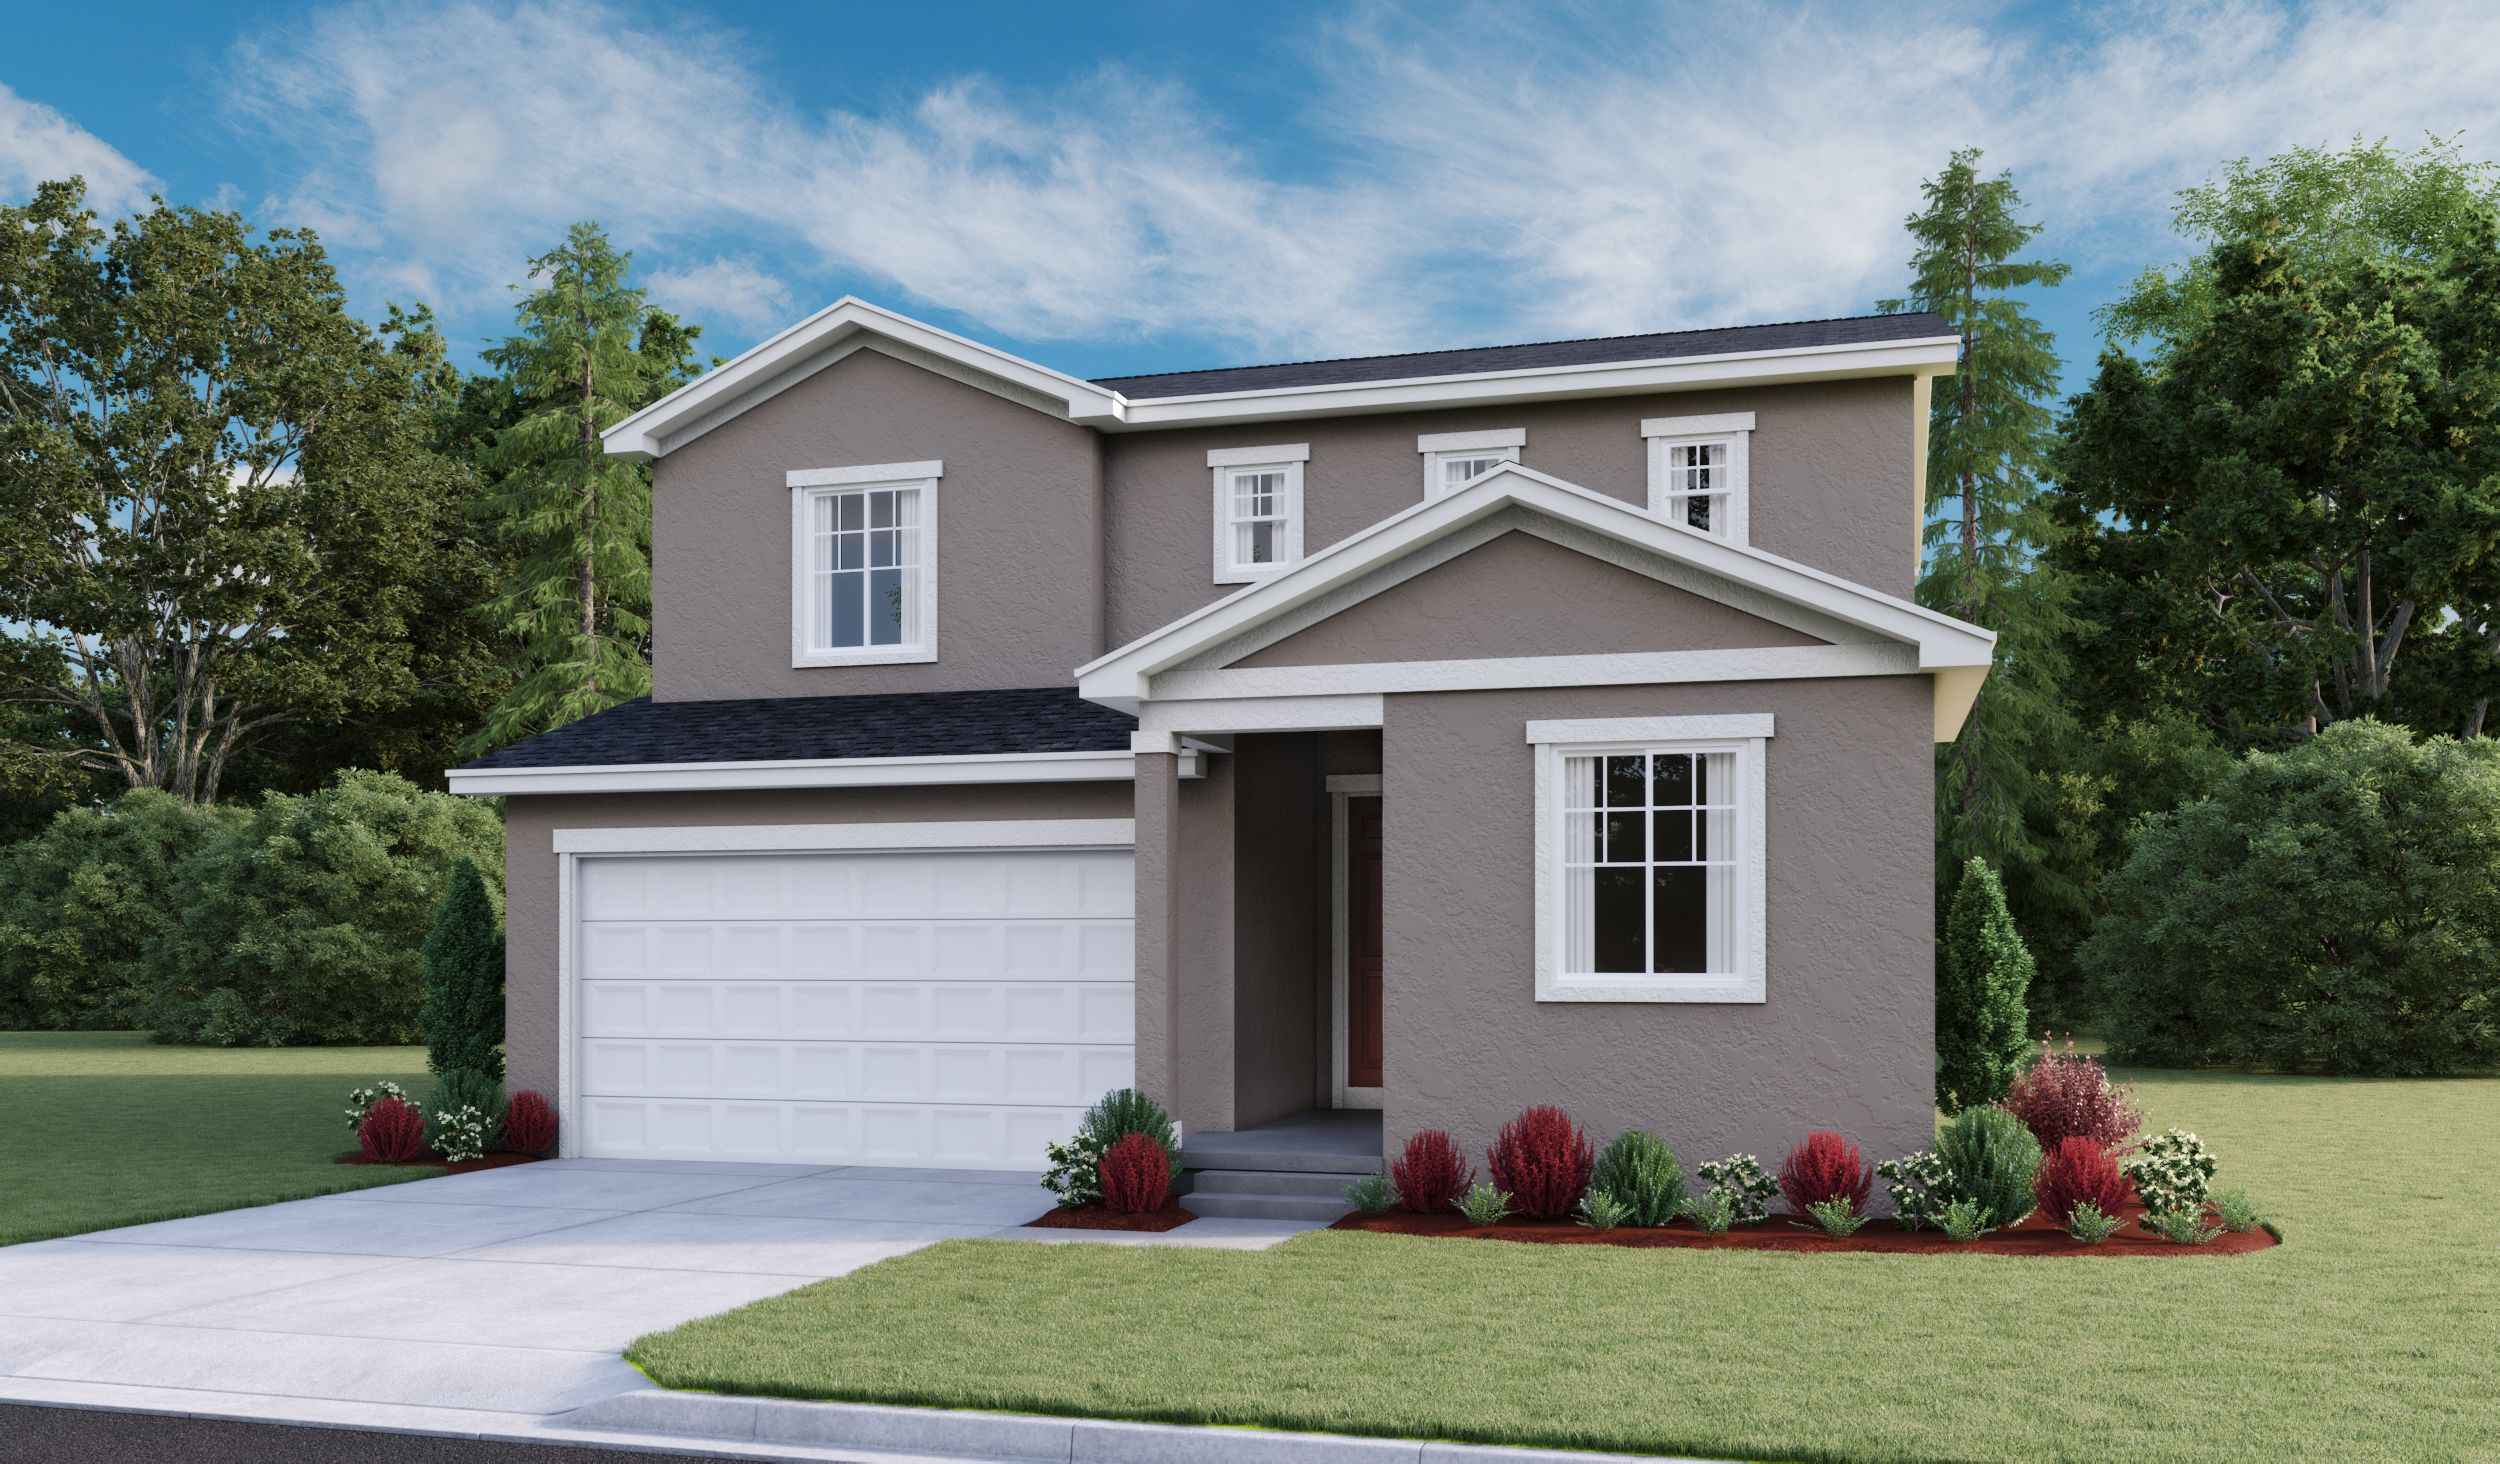 New Construction Homes Plans In Stansbury Park Ut 1 507 Newhomesource